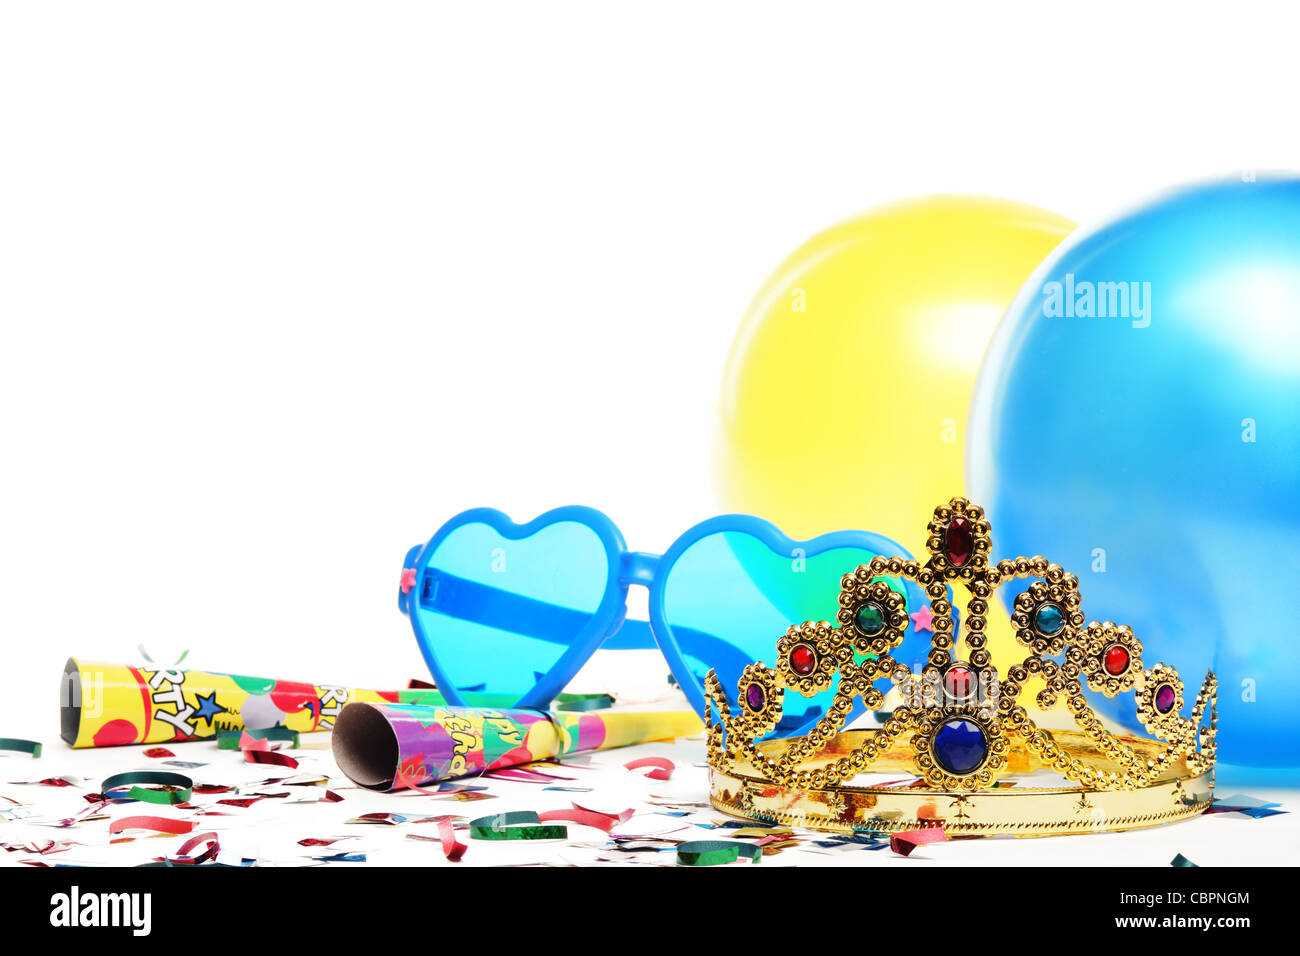 Birthday party decorations,Closeup. - Stock Image